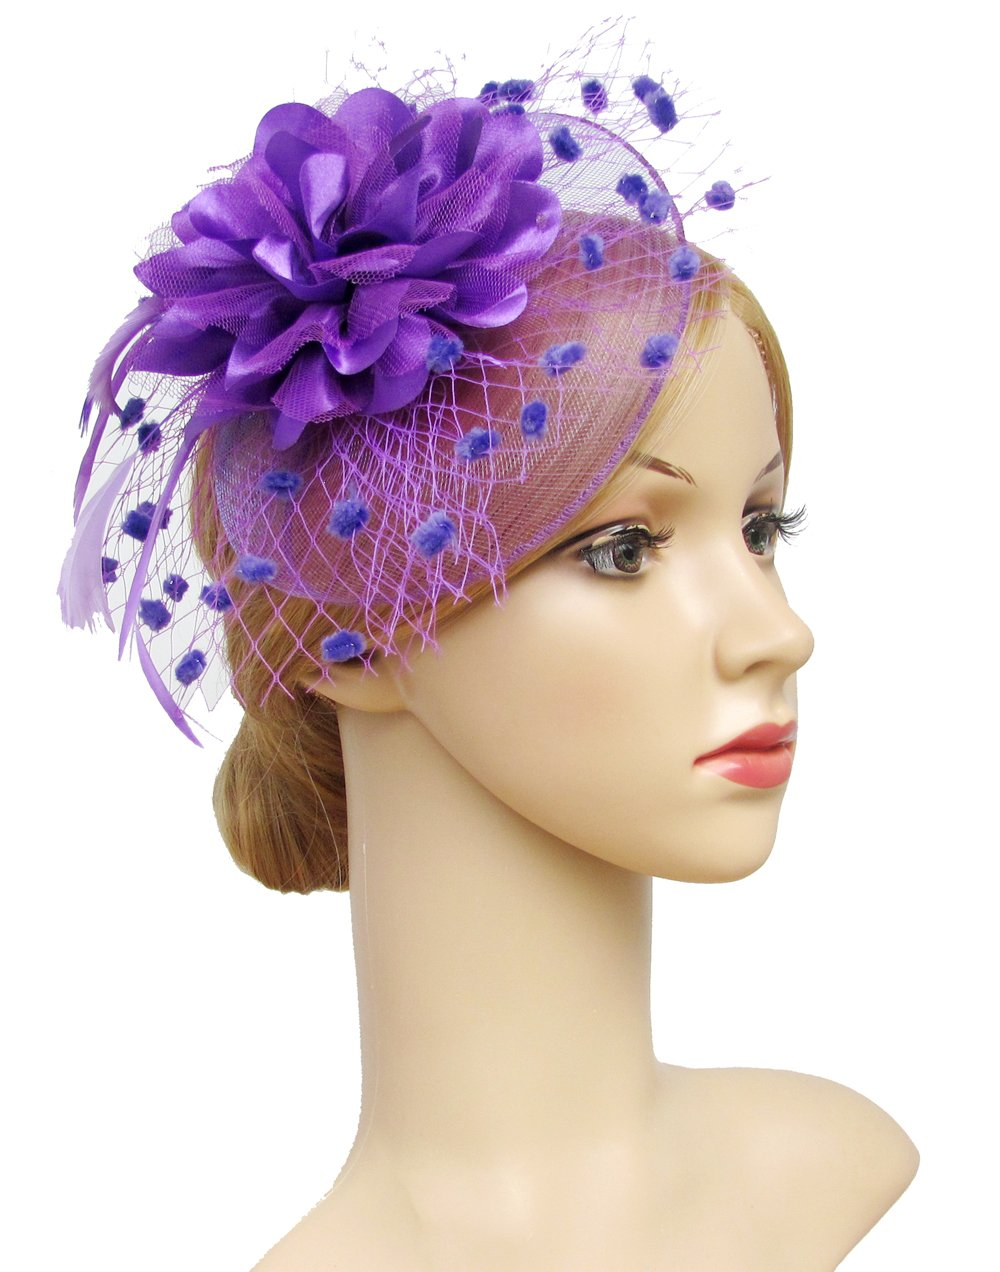 K.CLASSIC Fascinators Hats for Womens 50s Headwear with Veil Flower Cocktail Wedding Tea Party Hat